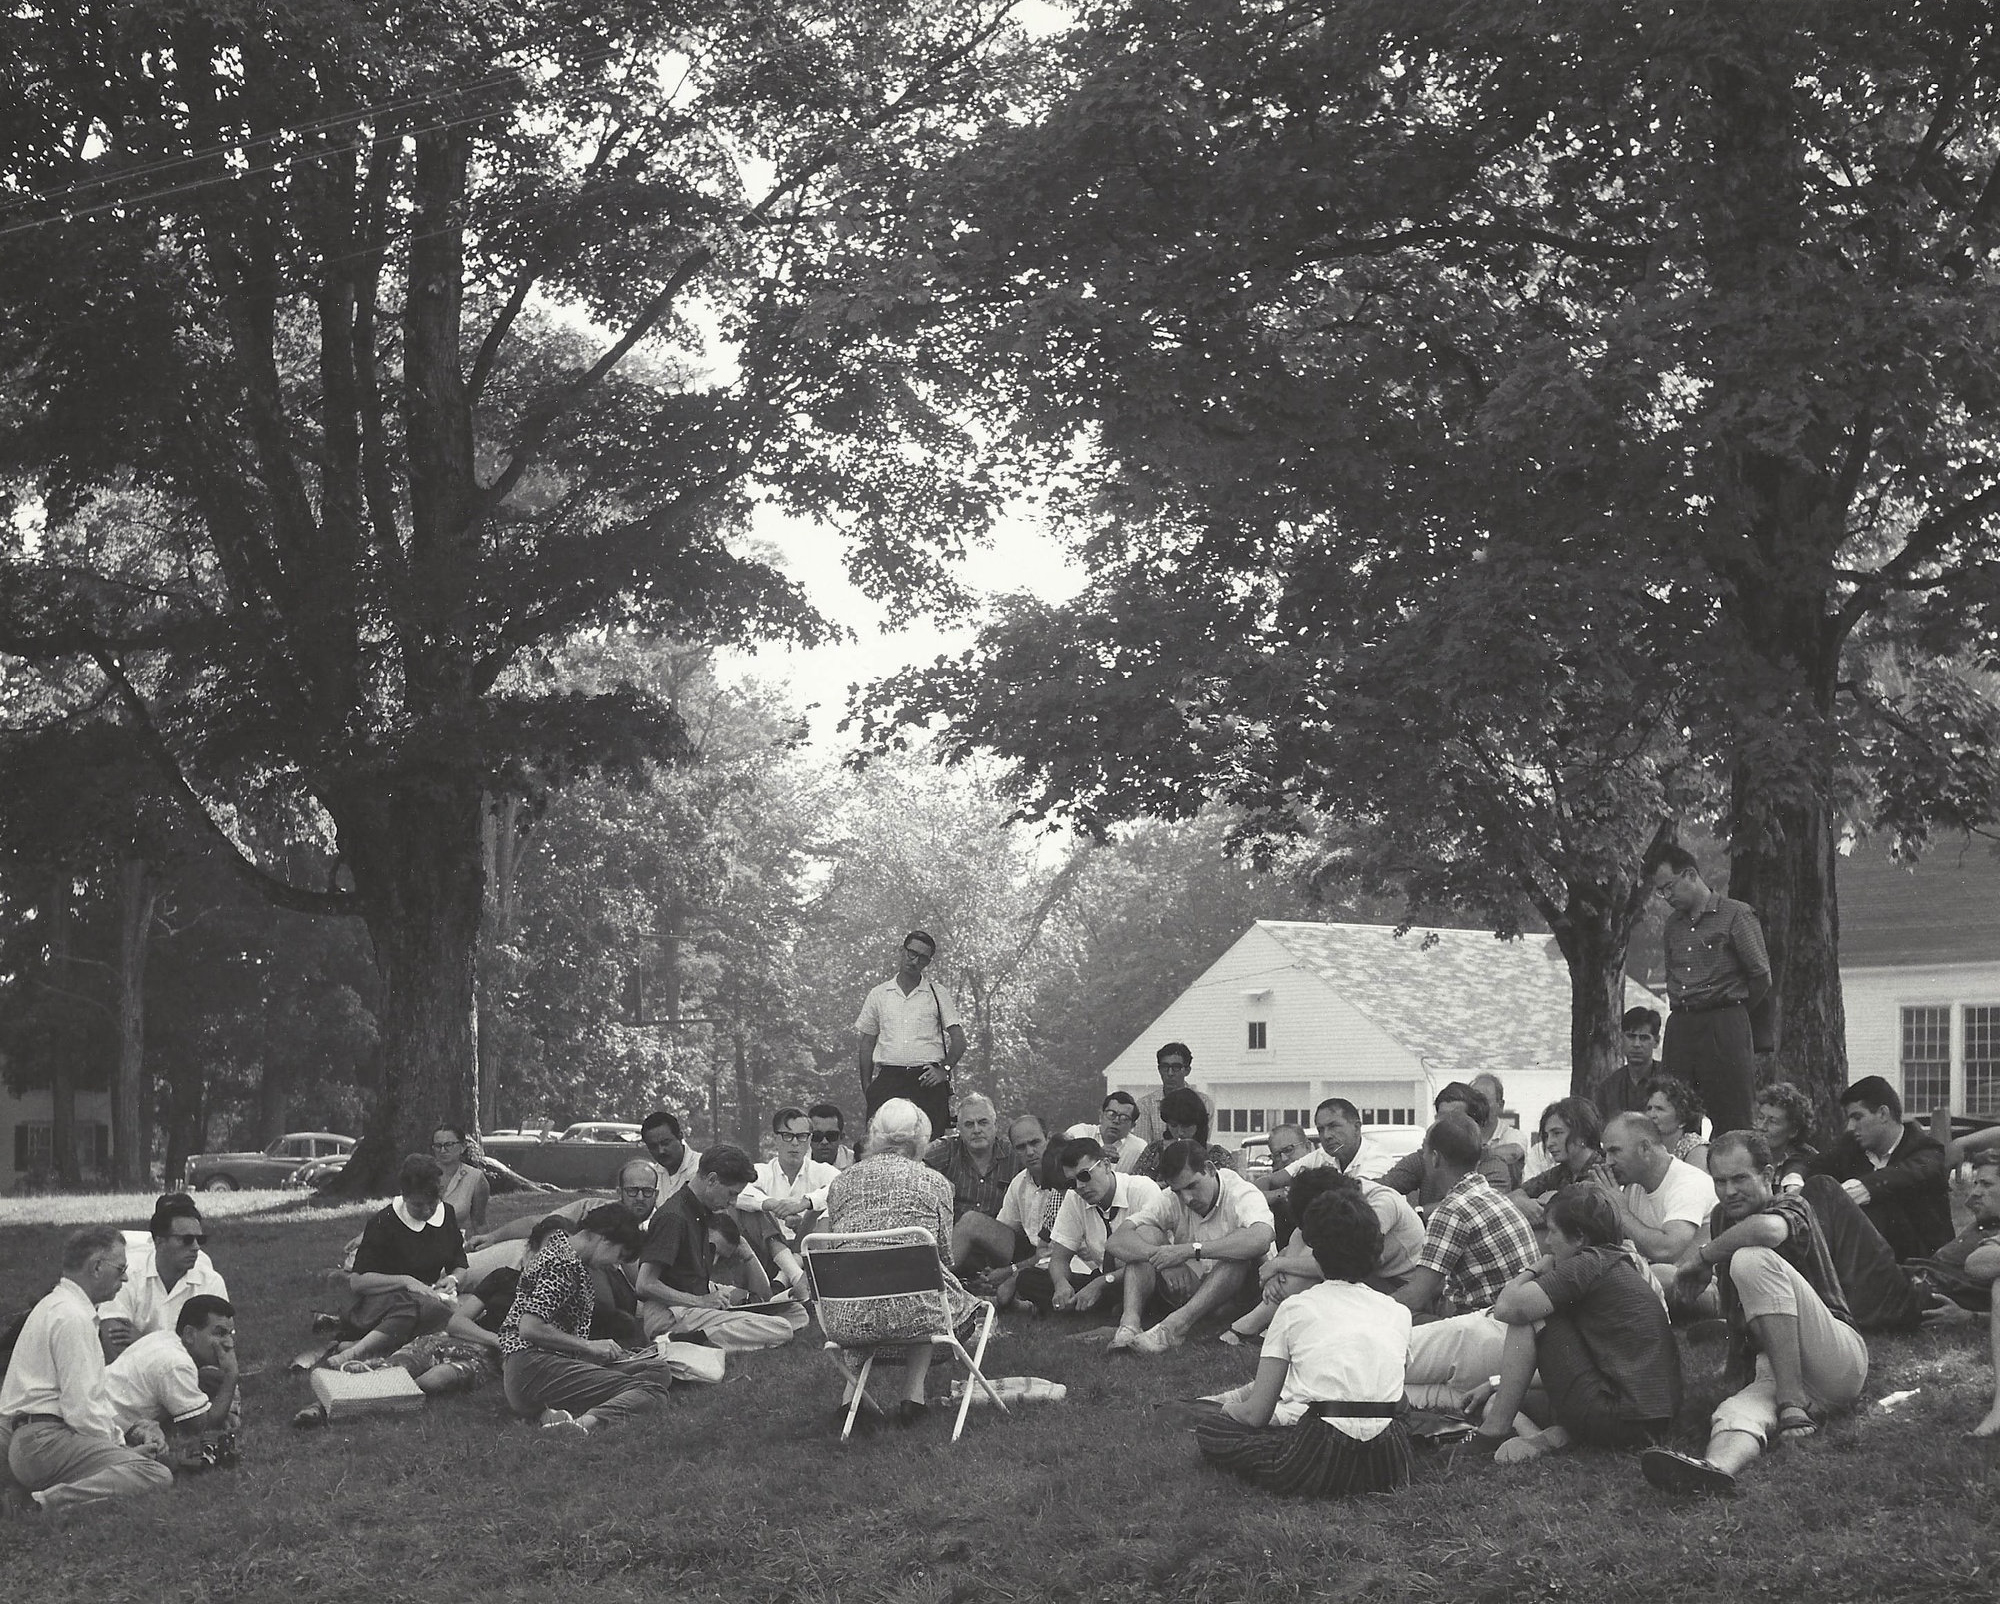 The Robert Flaherty Film Seminar at the Flaherty Farm in Vermont circa 1950s (Flaherty at MoMA: Turning the Inside Out, June 21-30, 2014). Courtesy of the Flaherty Seminar.